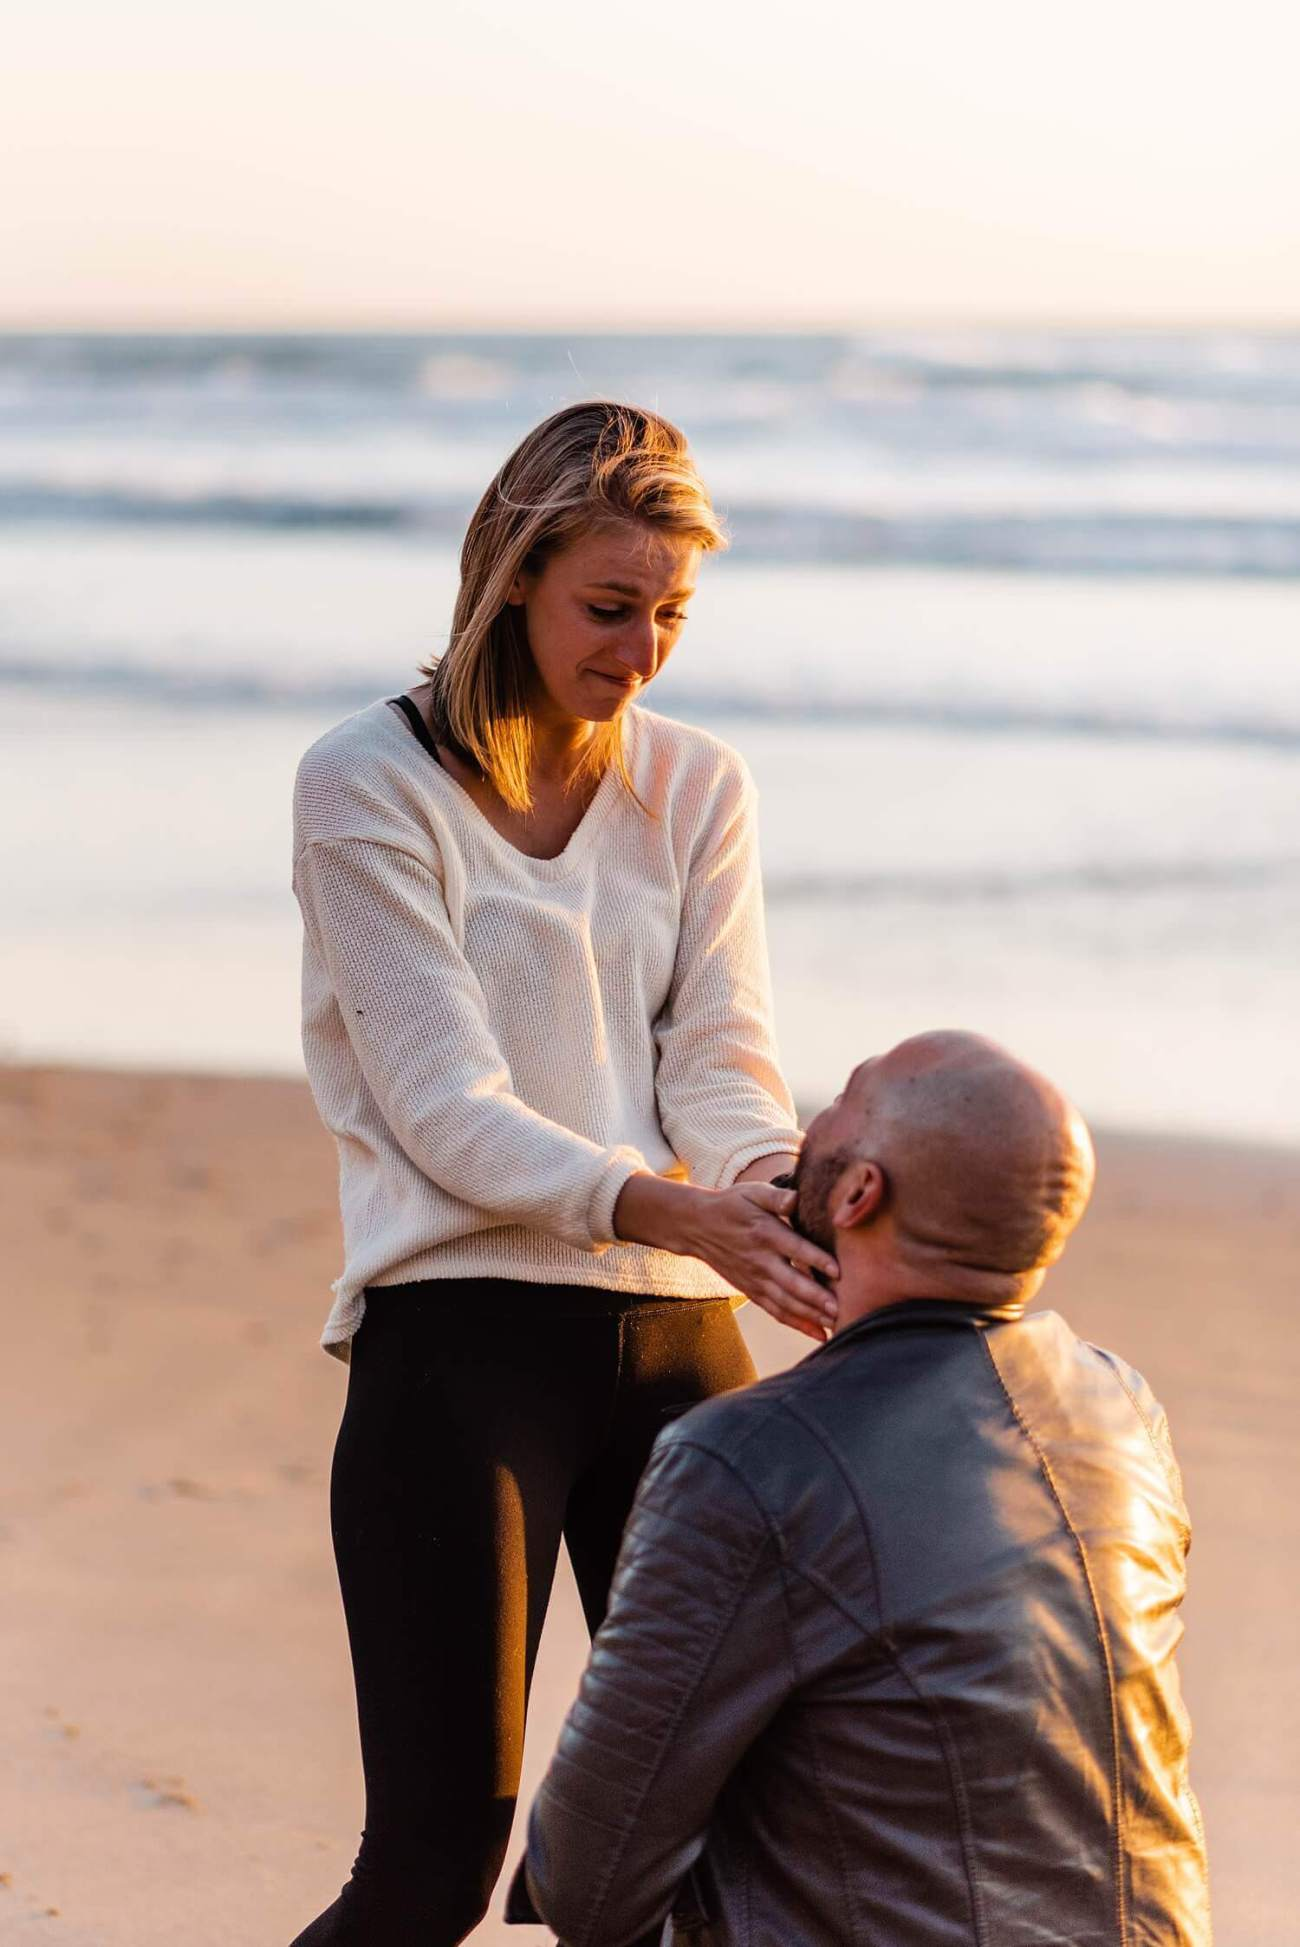 beach proposal,cape perpetua,elope,engagement session,neptune beach,oregon coast proposal,oregon wedding photographer,pacific northwest,